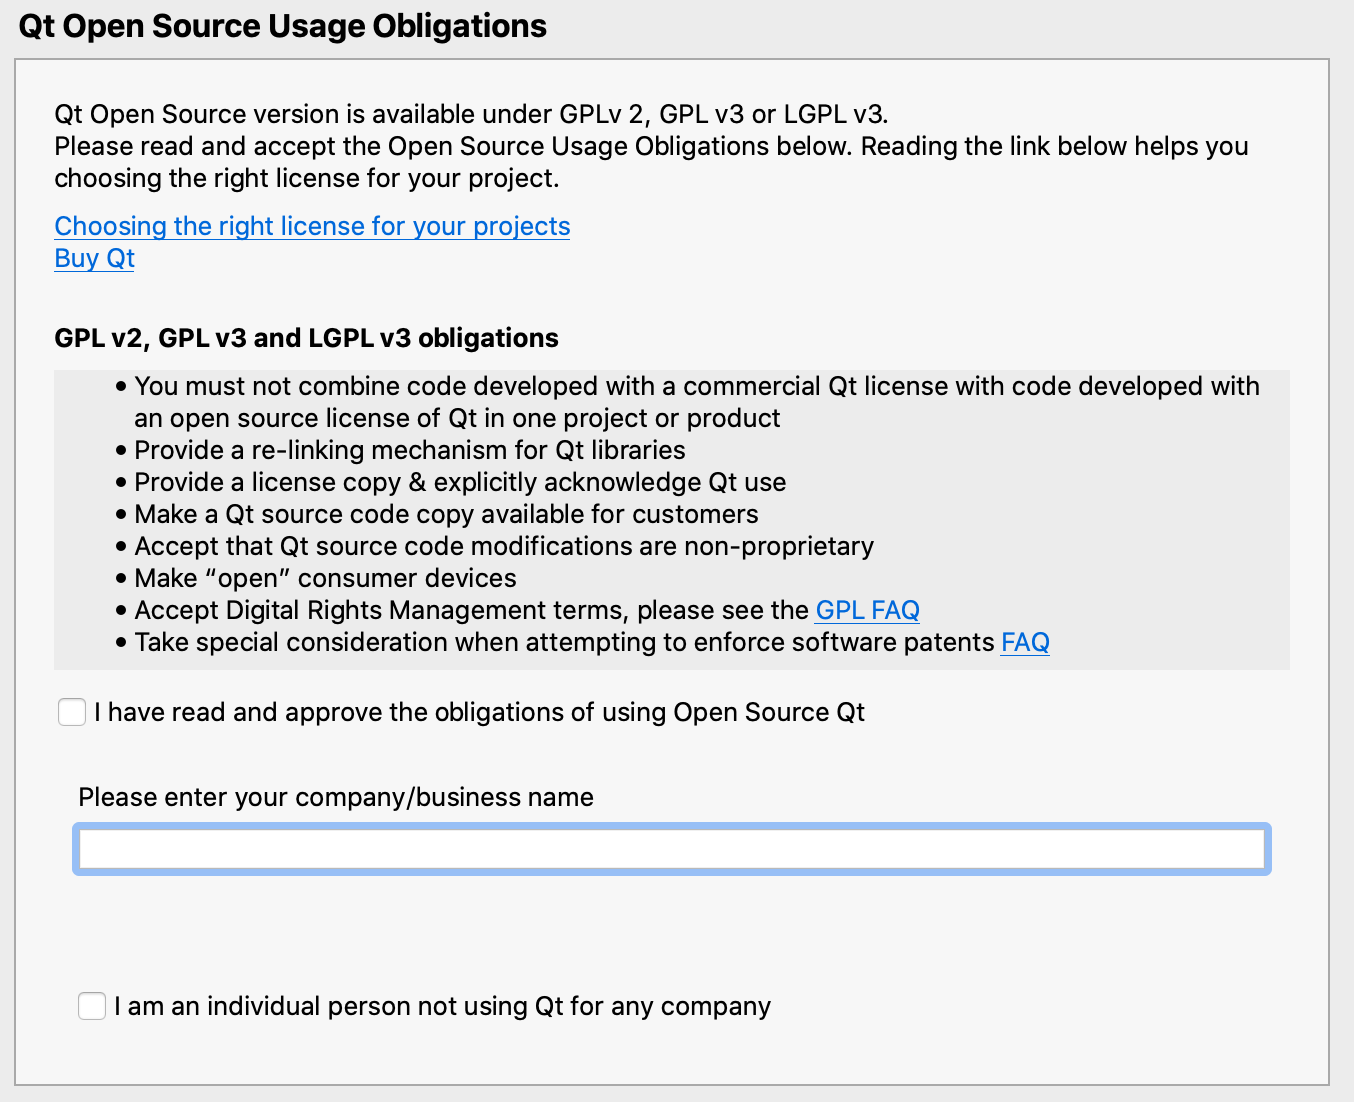 Qt Open Source obligations page in the installer